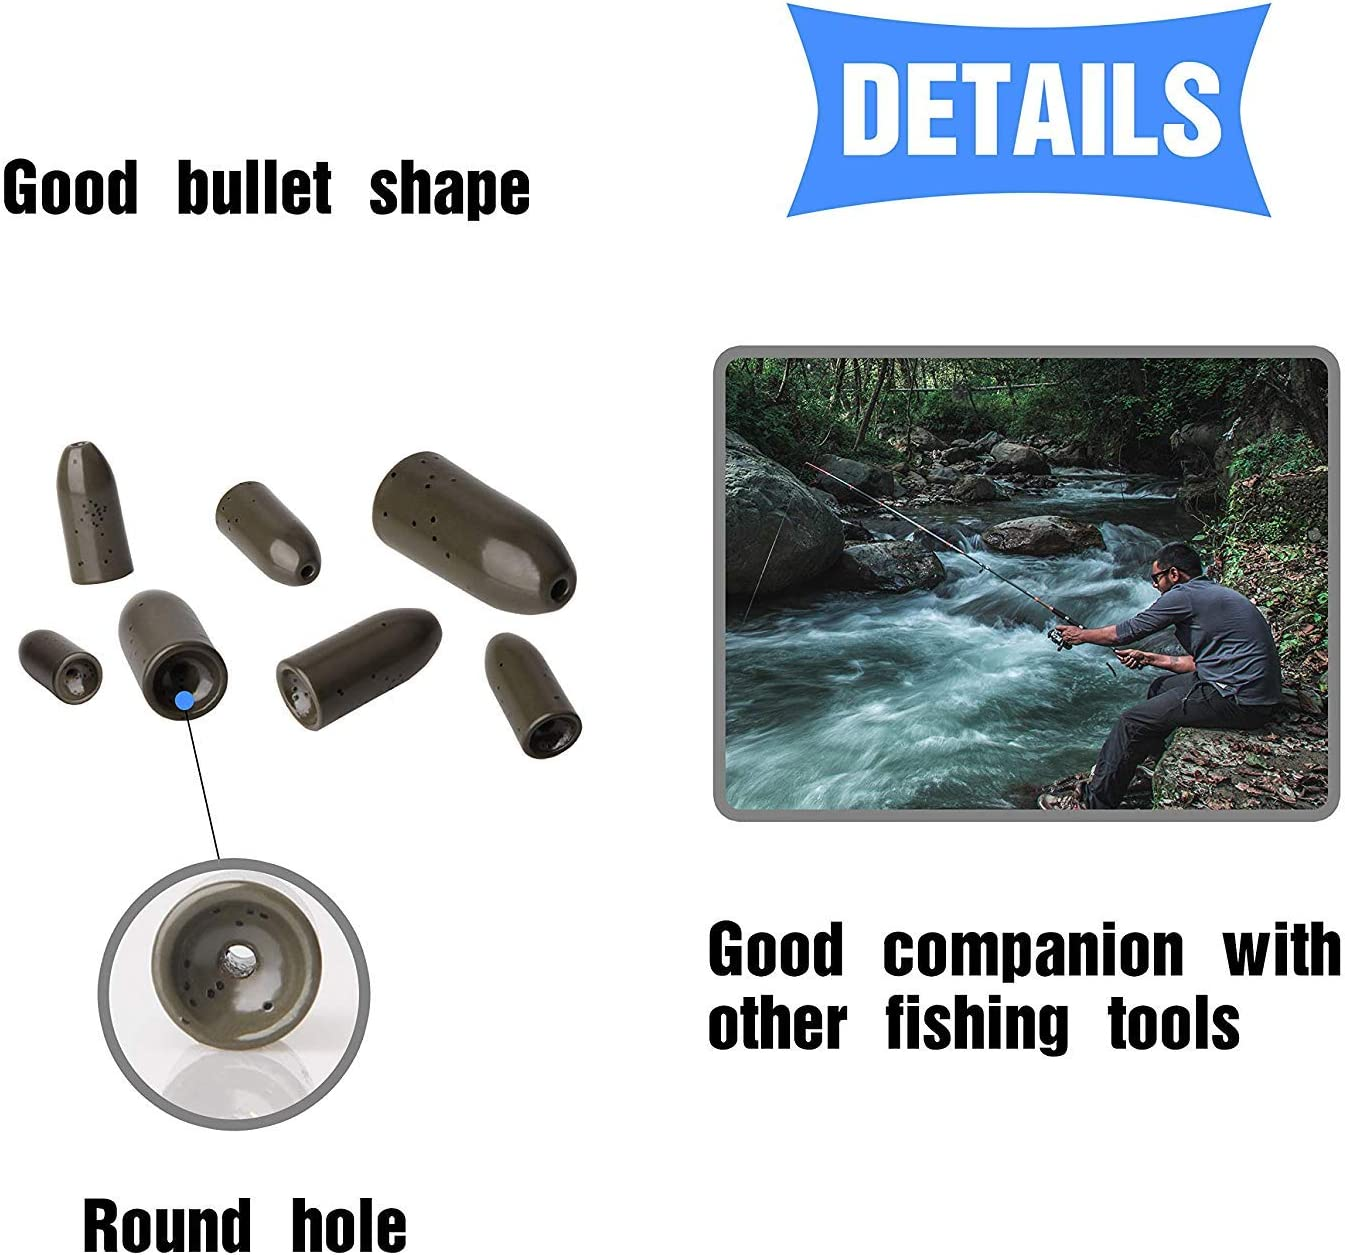 Bass Fishing Pitching Flipping Sinker Weight for Carolina Rig Texas Rig Punch Rigs Multiple Sizes Colors Available Tungsten Bullet Worm Fishing Weights